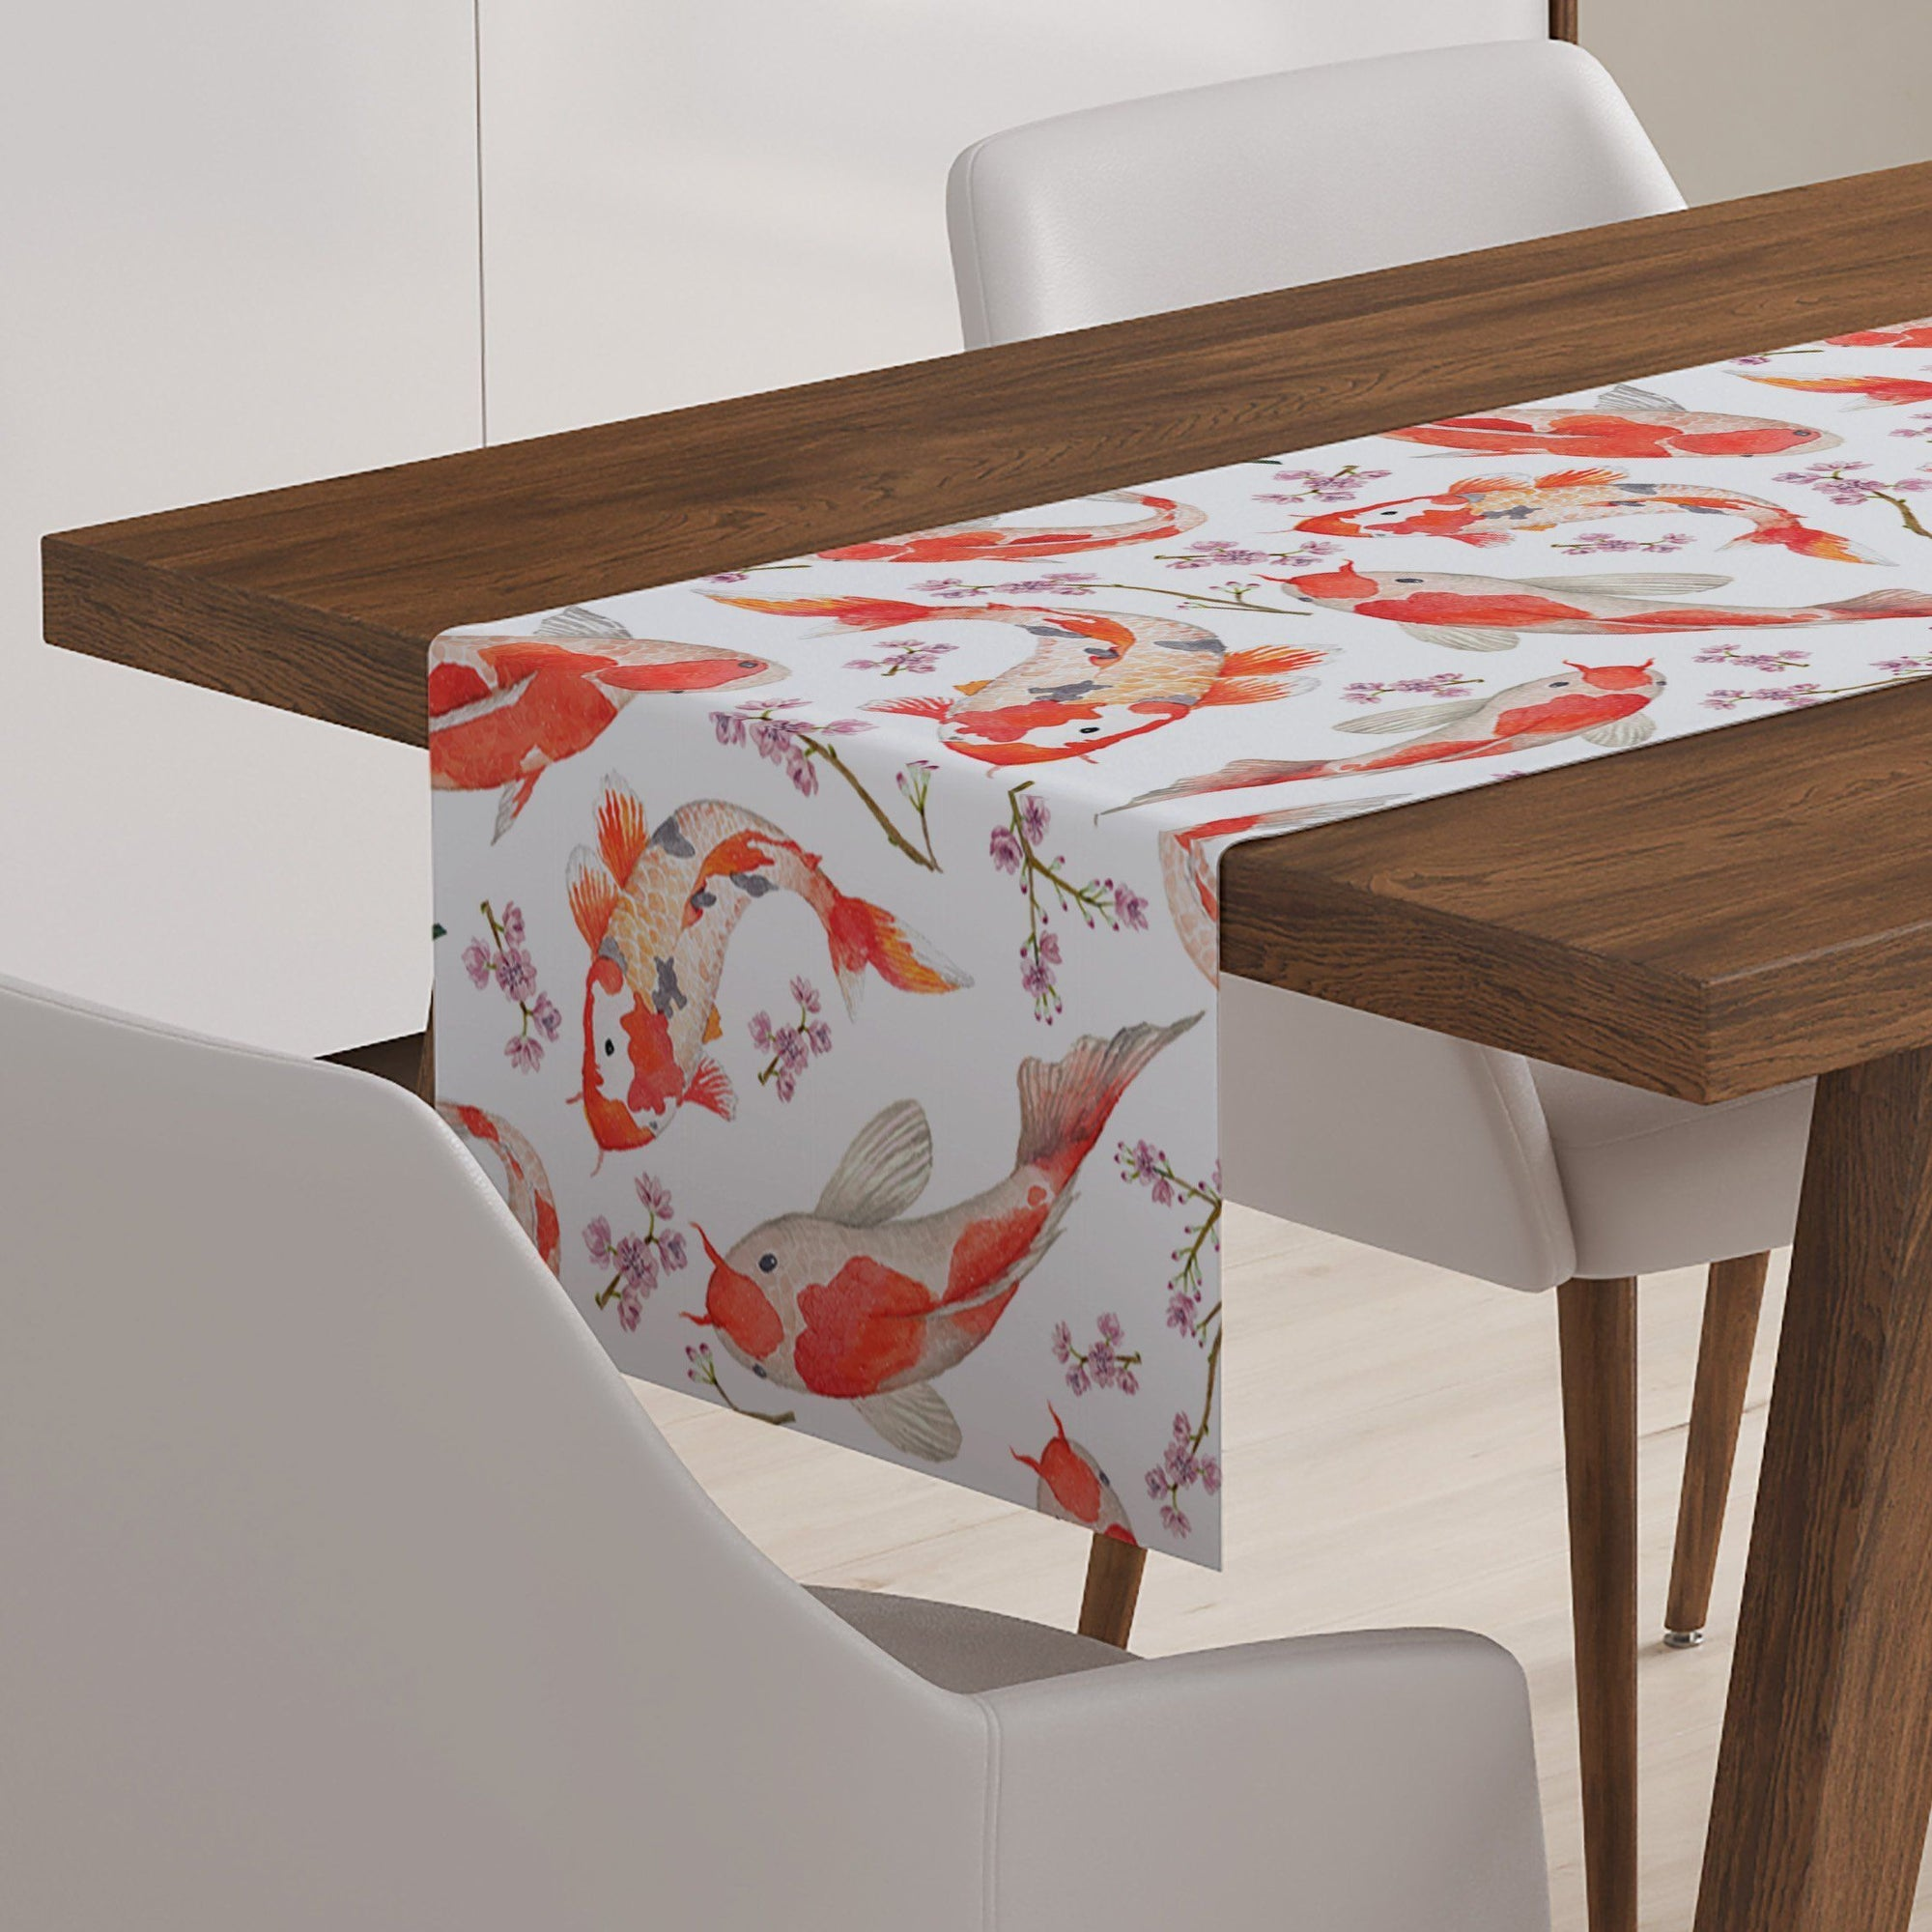 Japanese Koi Fish Table Runner - Table Runners - W.FRANCIS